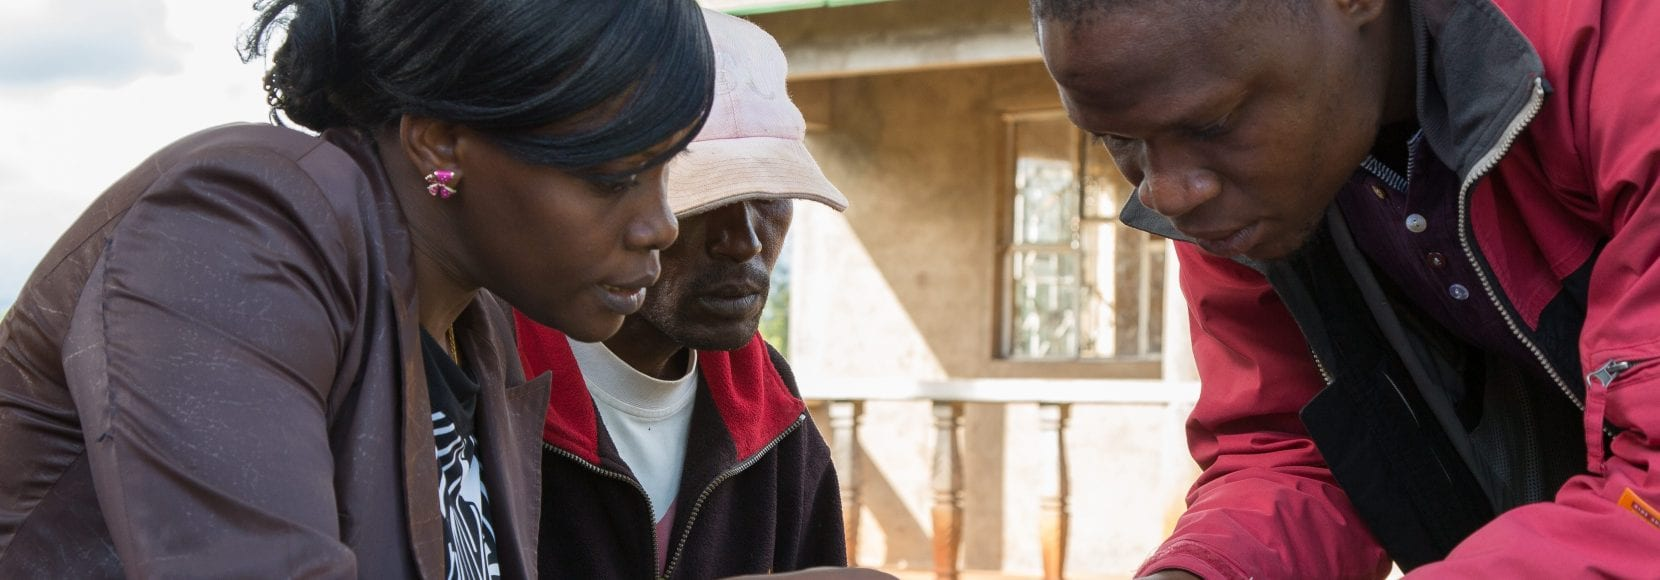 Careers at TechnoServe hero image - Farmers in Tanzania working with a consultant on record-keeping.